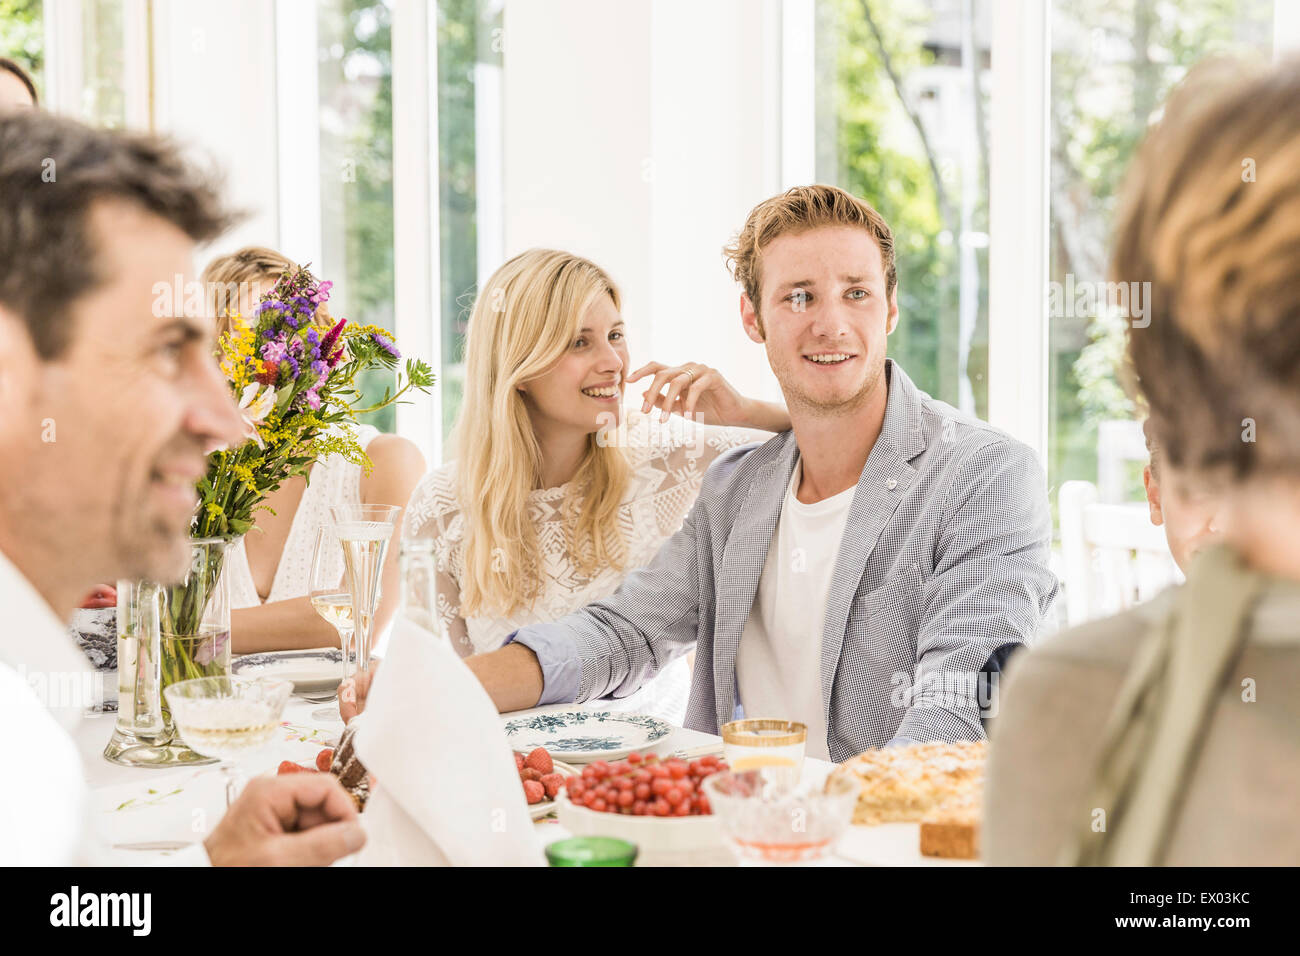 Family adults chatting at birthday party table - Stock Image